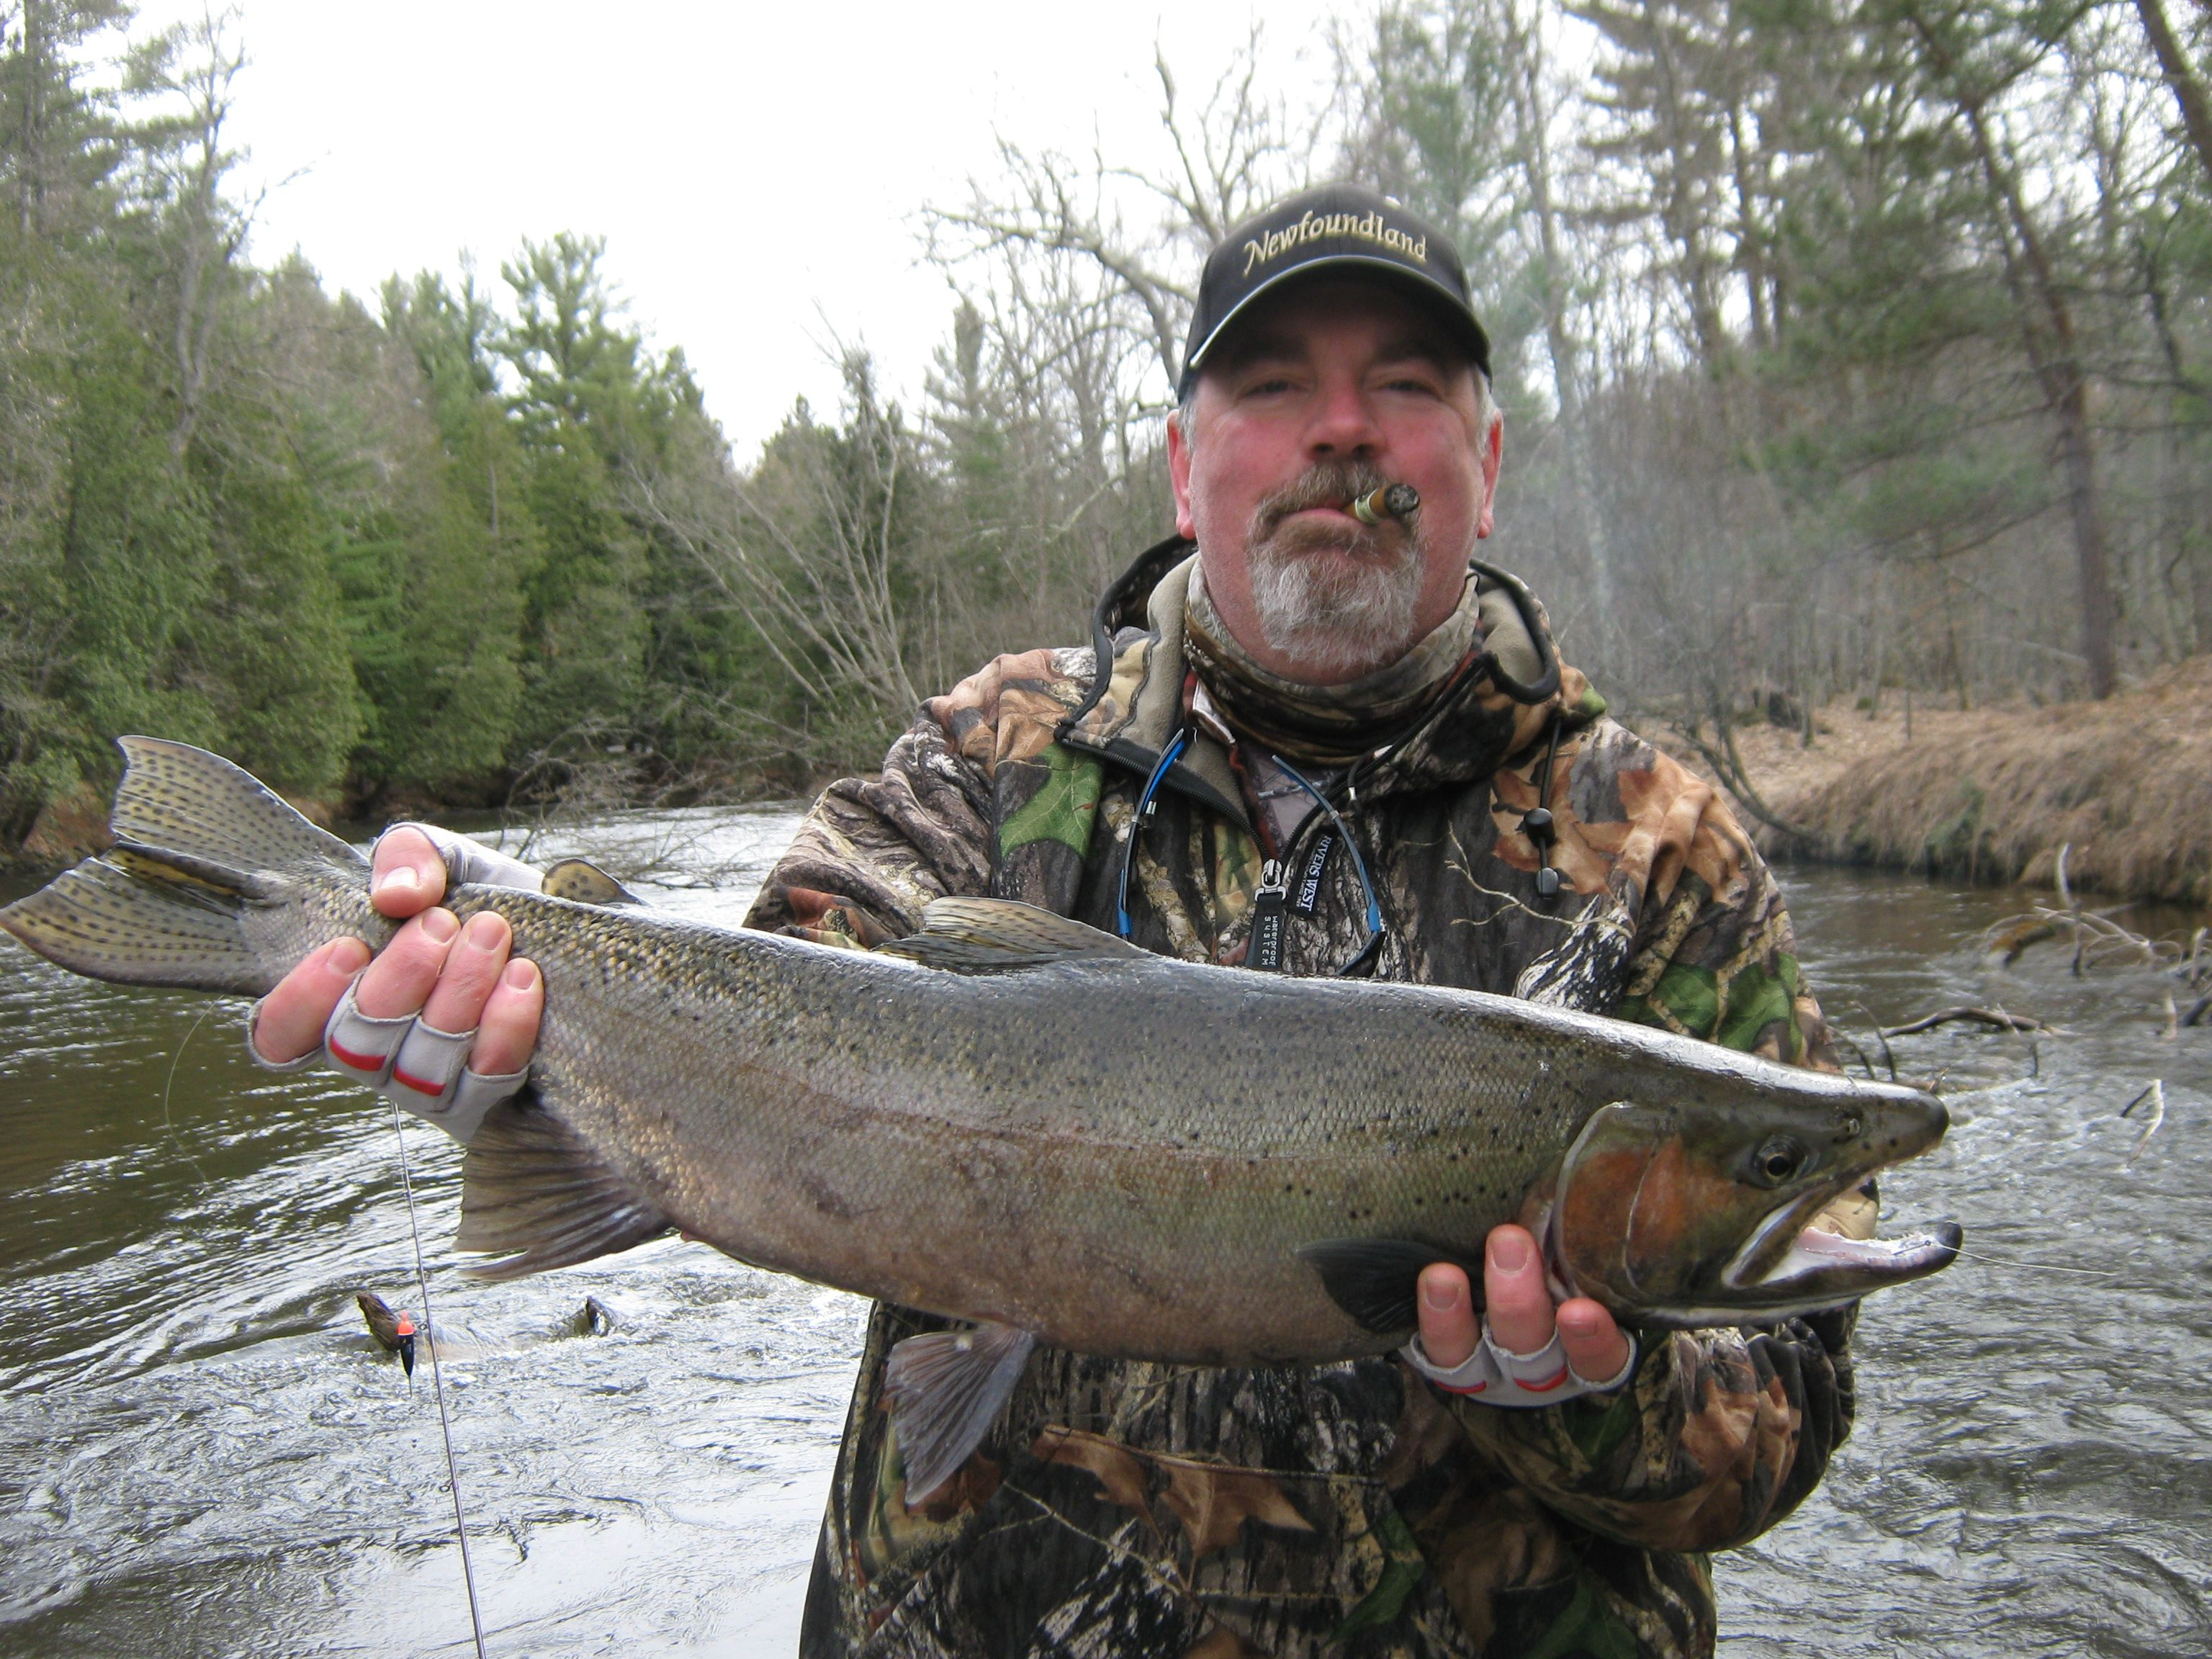 PM River - we went 5 for 8 on steelhead today along with a dozen trout on the line. Thanks to Jeff Topp and Outcast River Guides - April 2015.